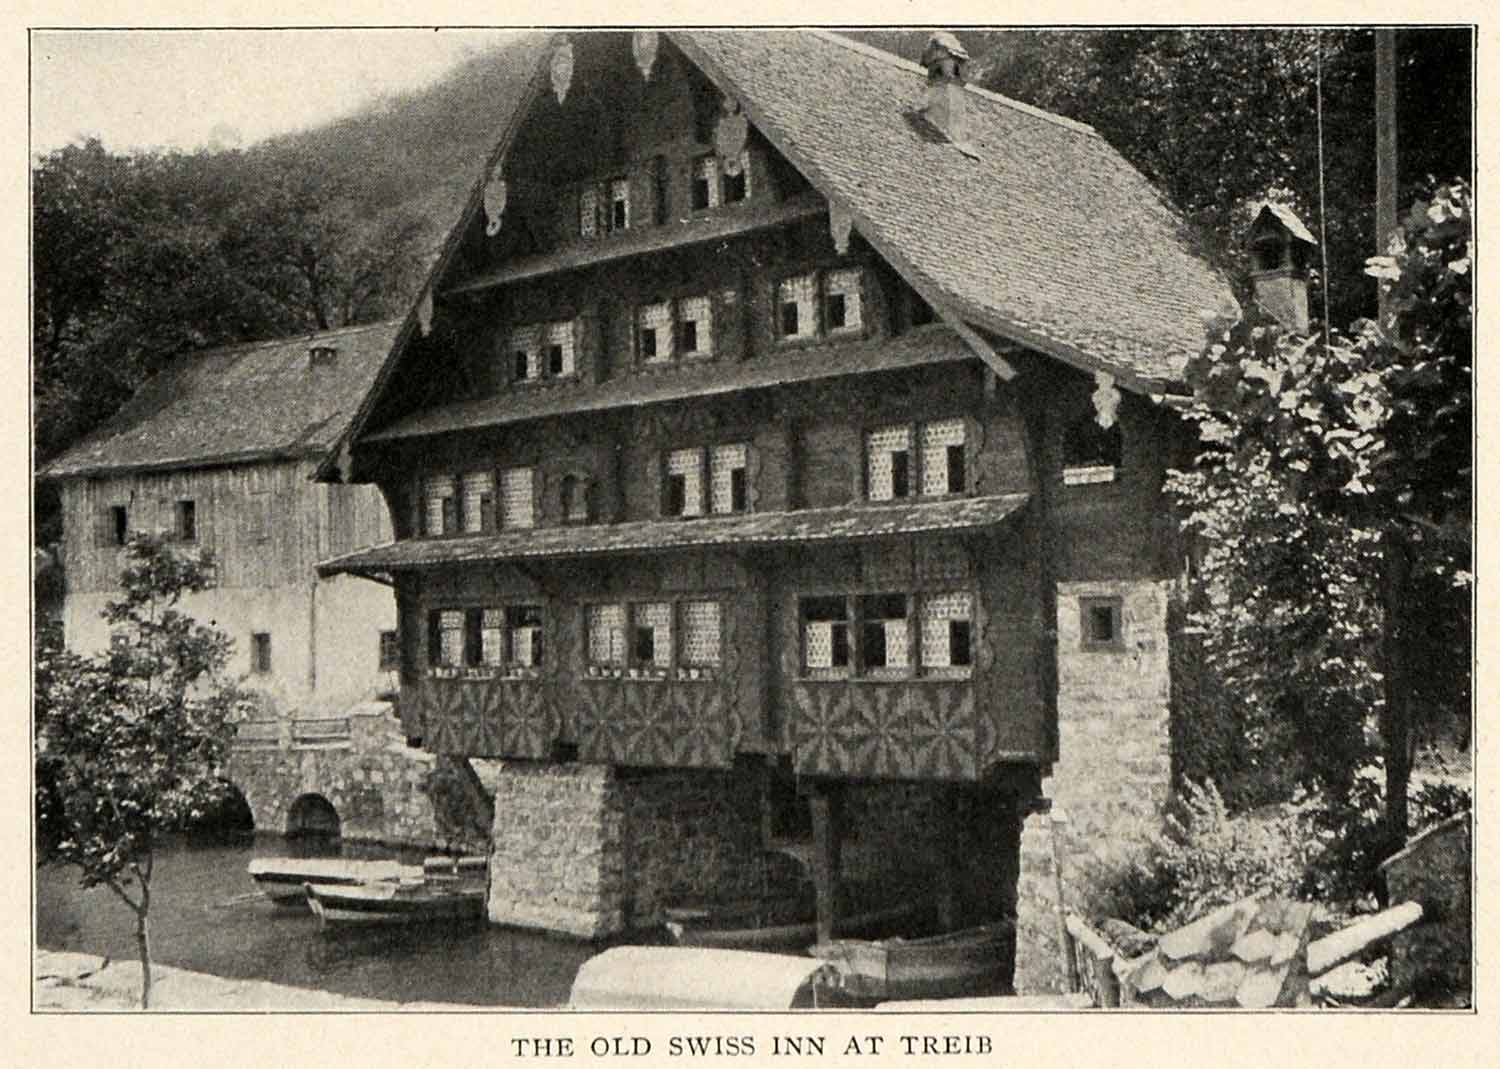 1910 Print Switzerland Old Swiss Inn Haus Zur Treib Medieval Architecture XGM2